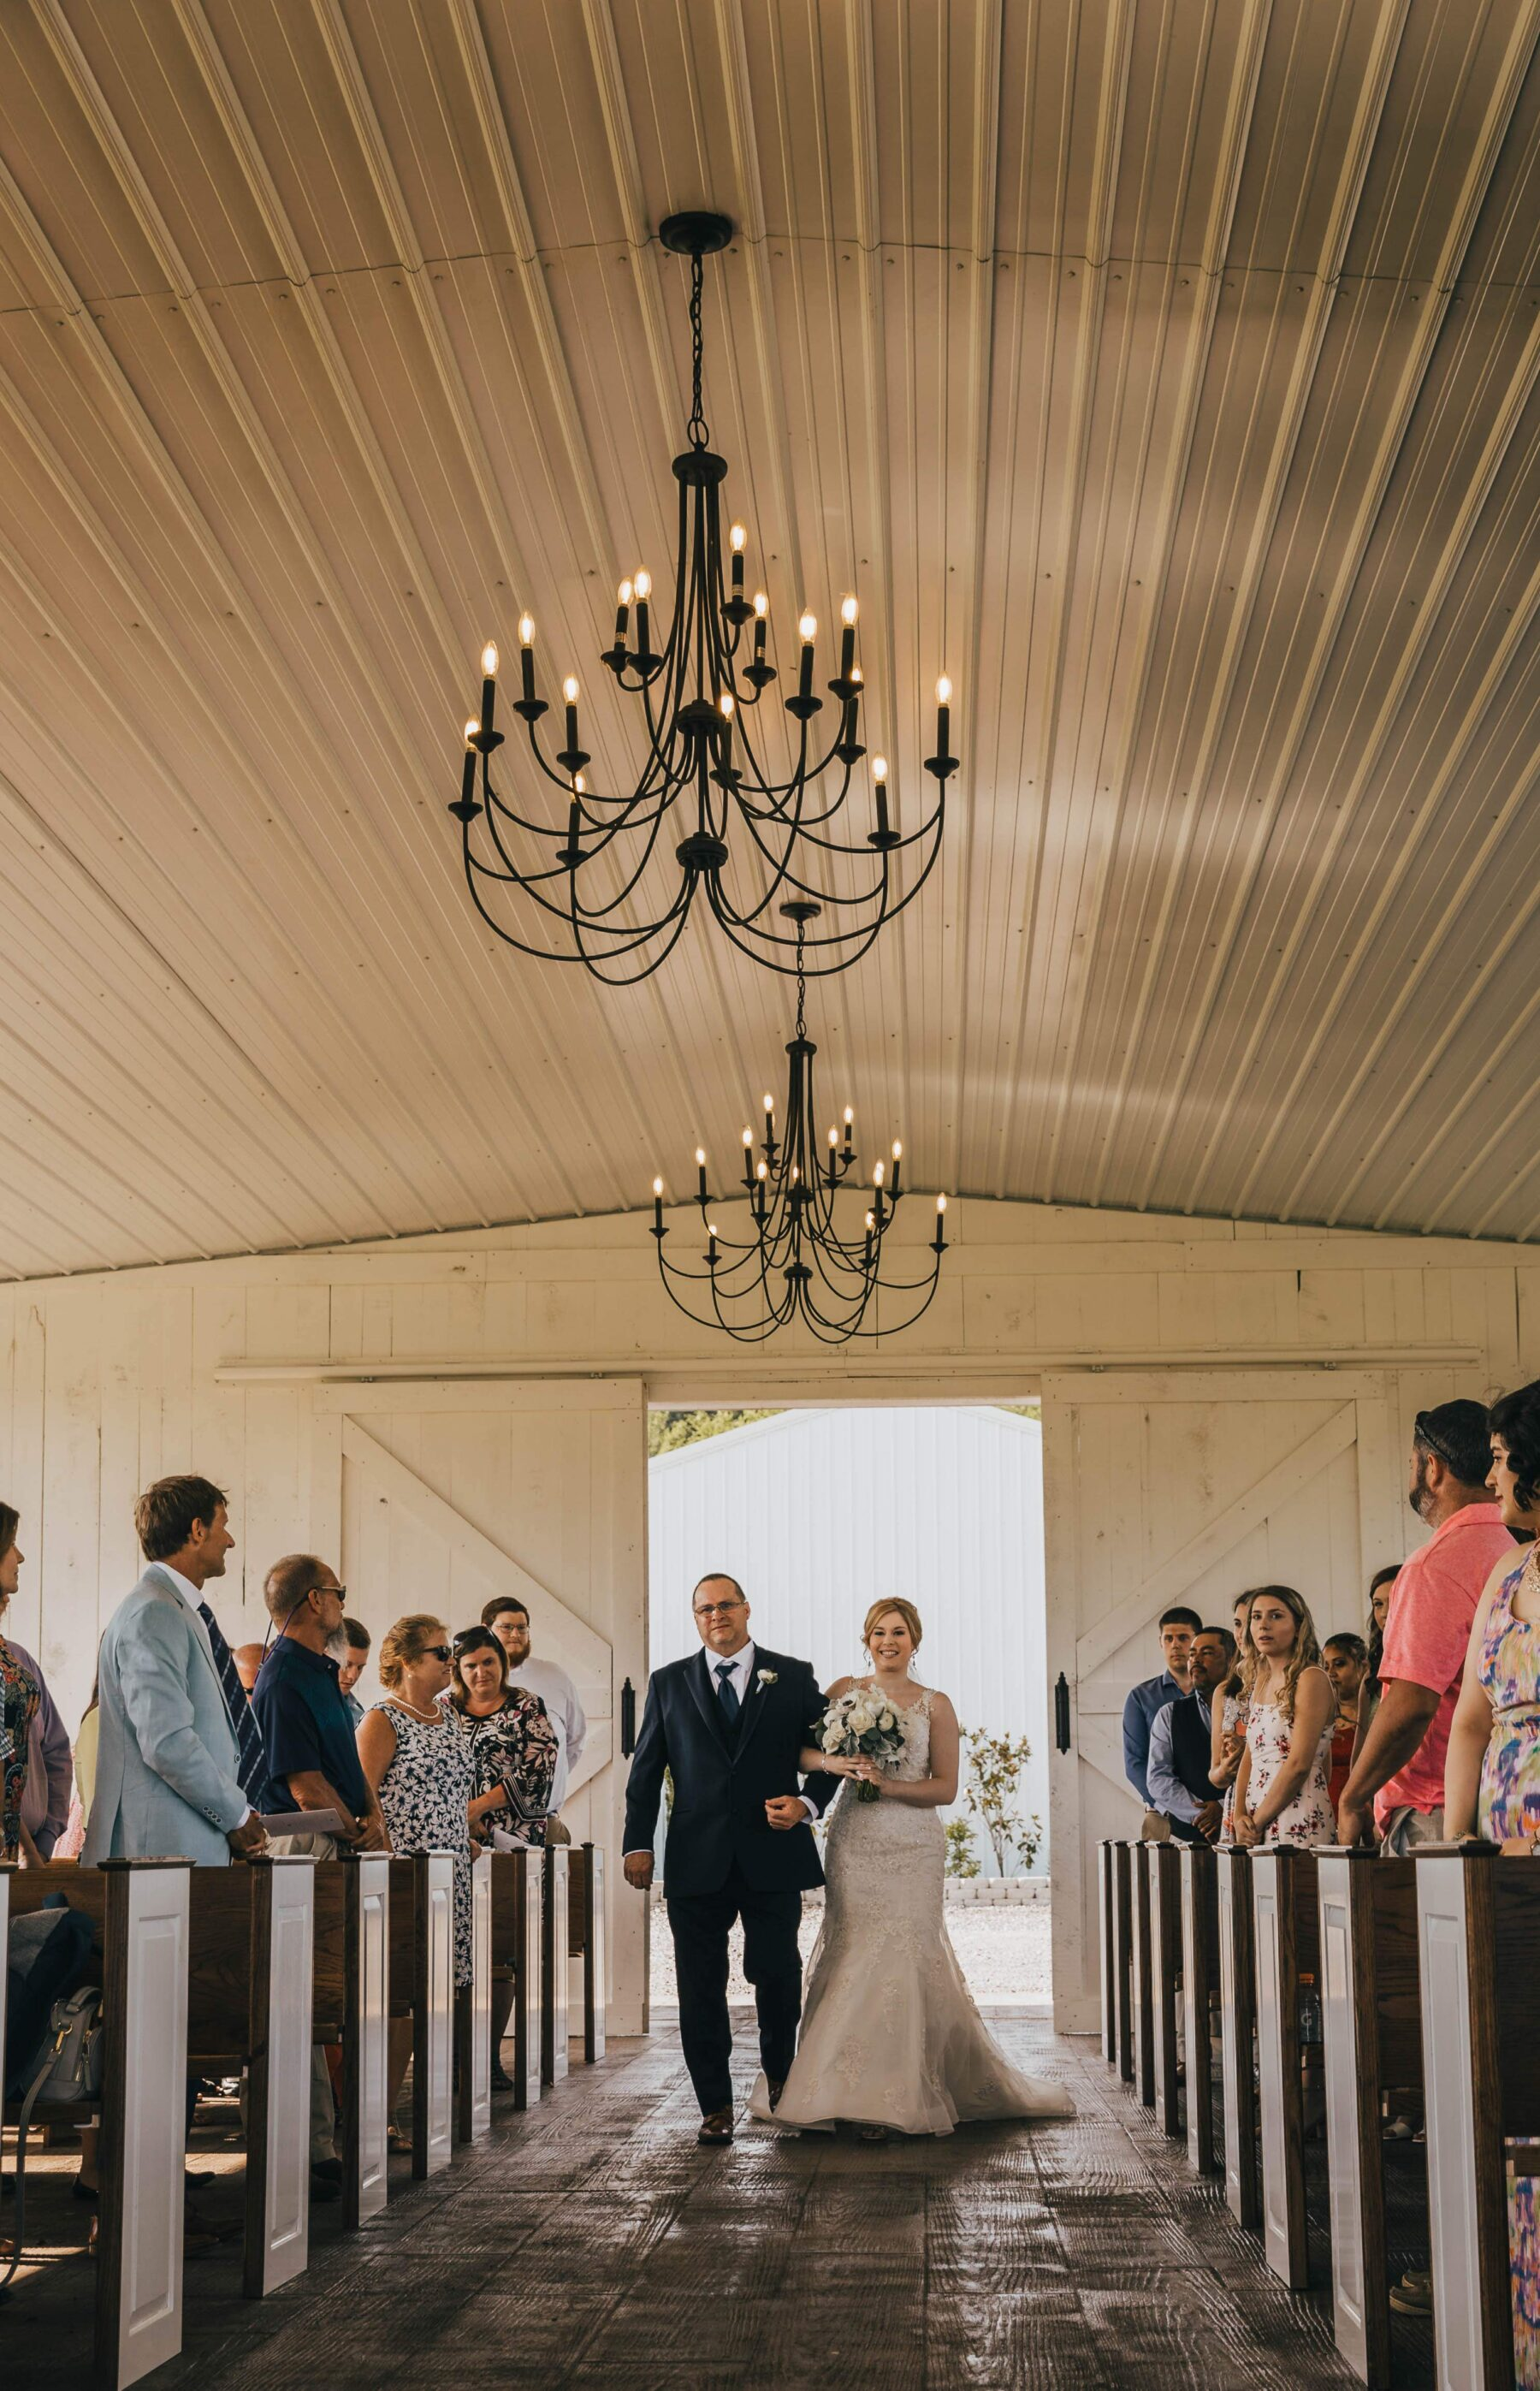 Bride escorted down the aisle by her father: White Dove Barn Wedding by Grace Upon Grace Photography featured on Nashville Bride Guide